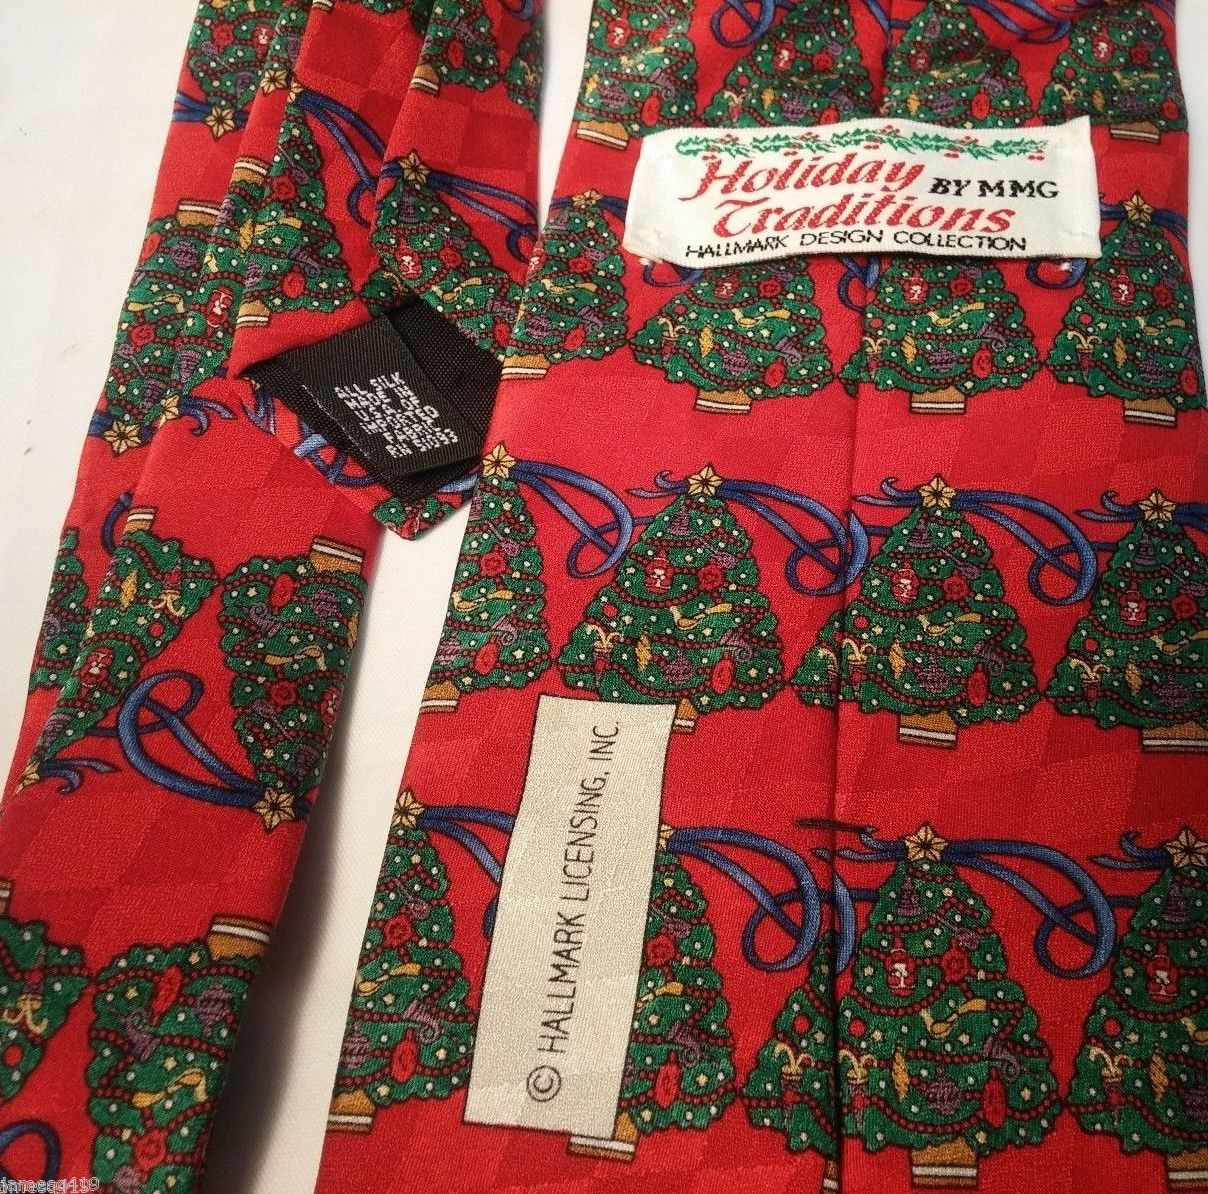 Holiday Traditions Hallmark Design Collection Christmas Trees Tie Red